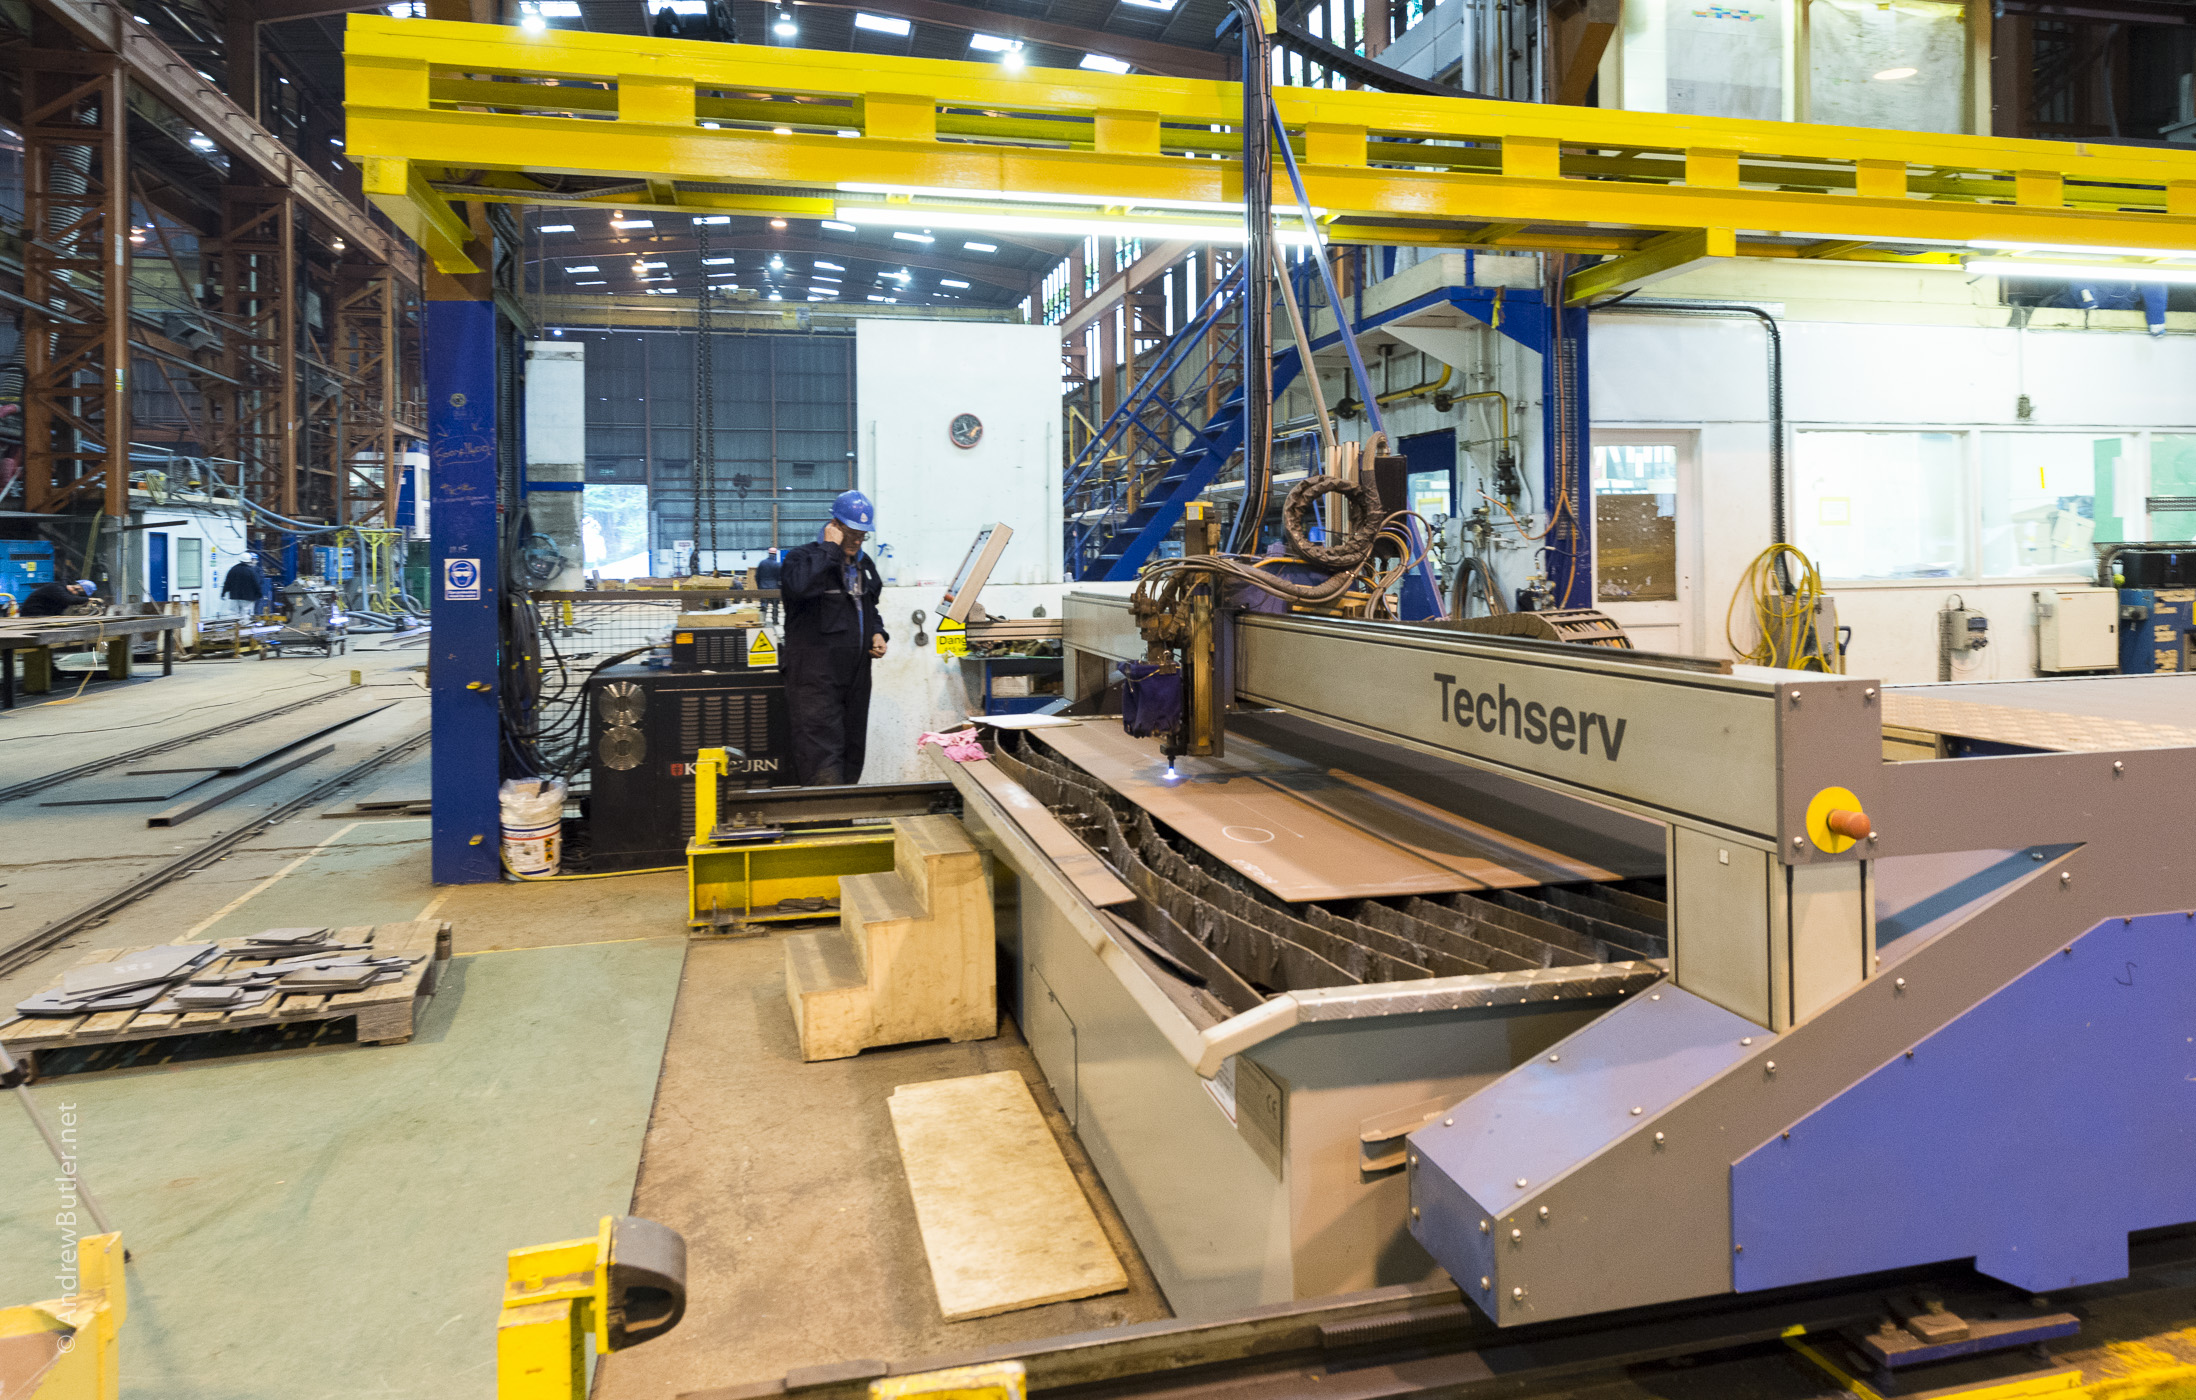 HS 4000 Babcock Appledore Techserv Plasma cutting machine